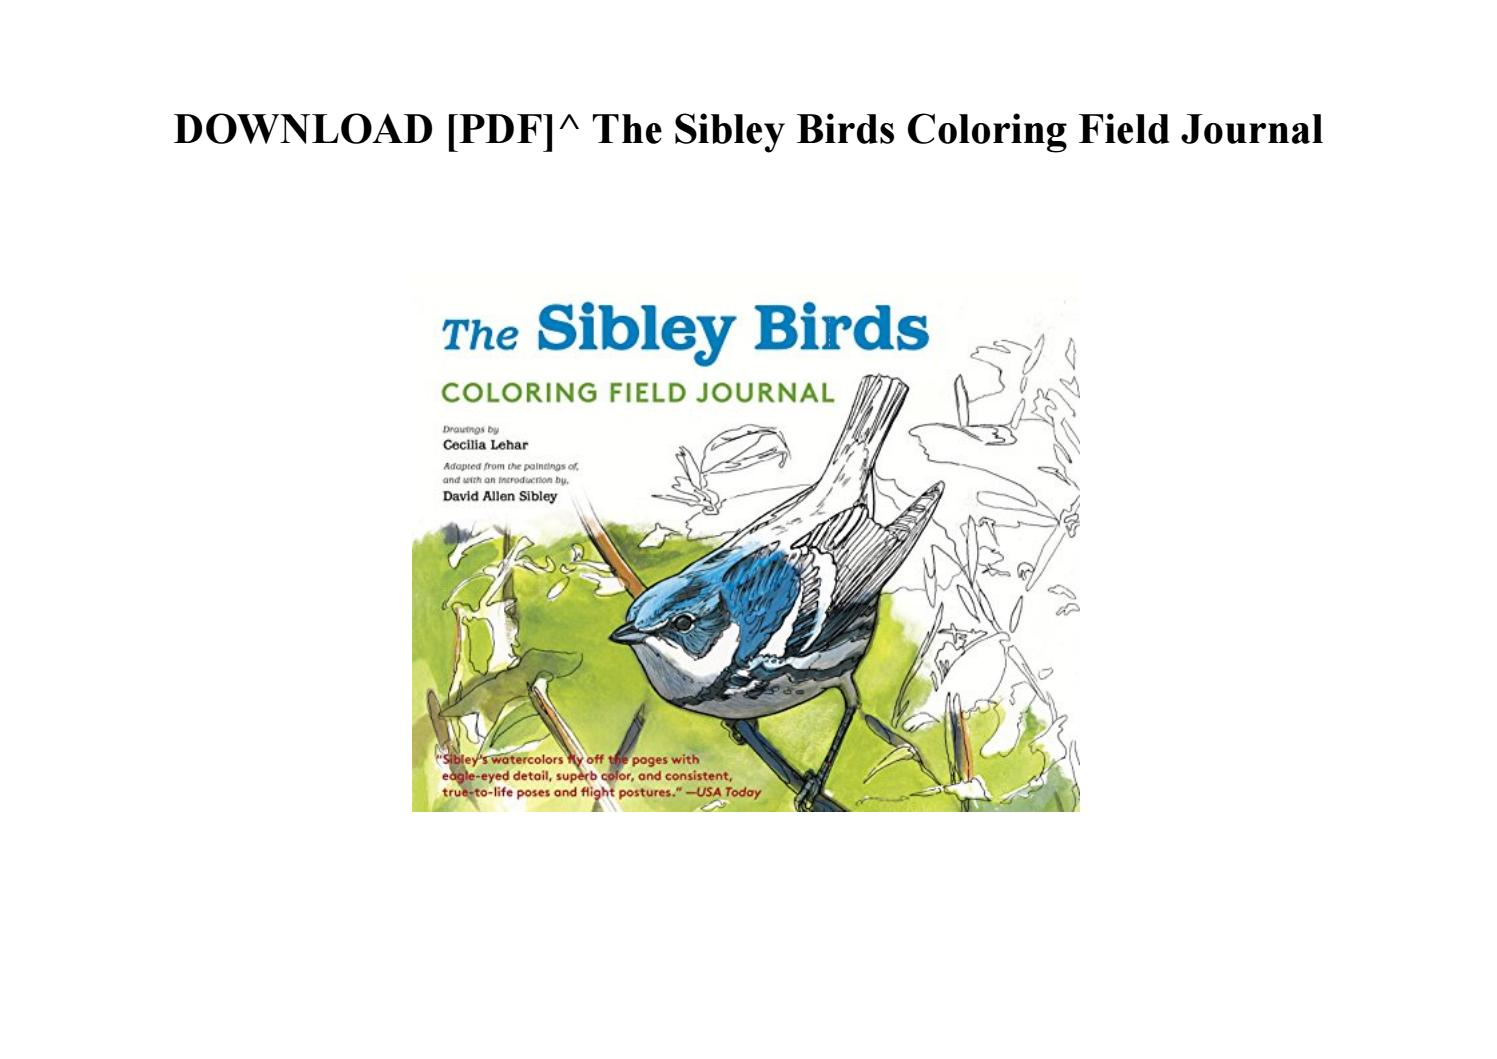 Download The Sibley Birds Coloring Field Journal By